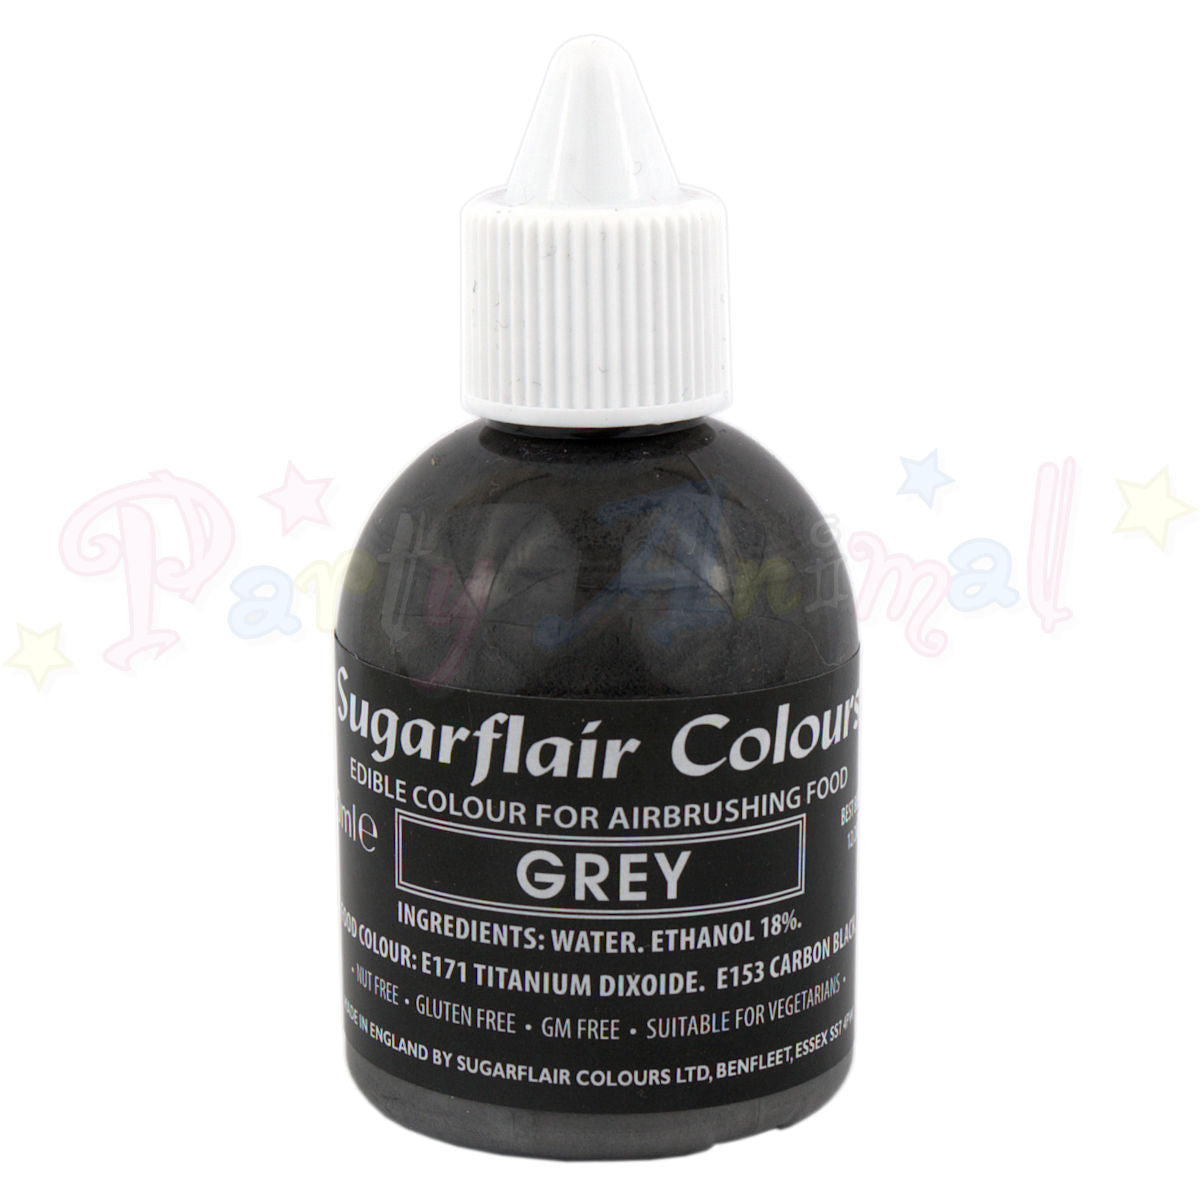 Sugarflair Airbrush Colours for Cake Decoration - Grey